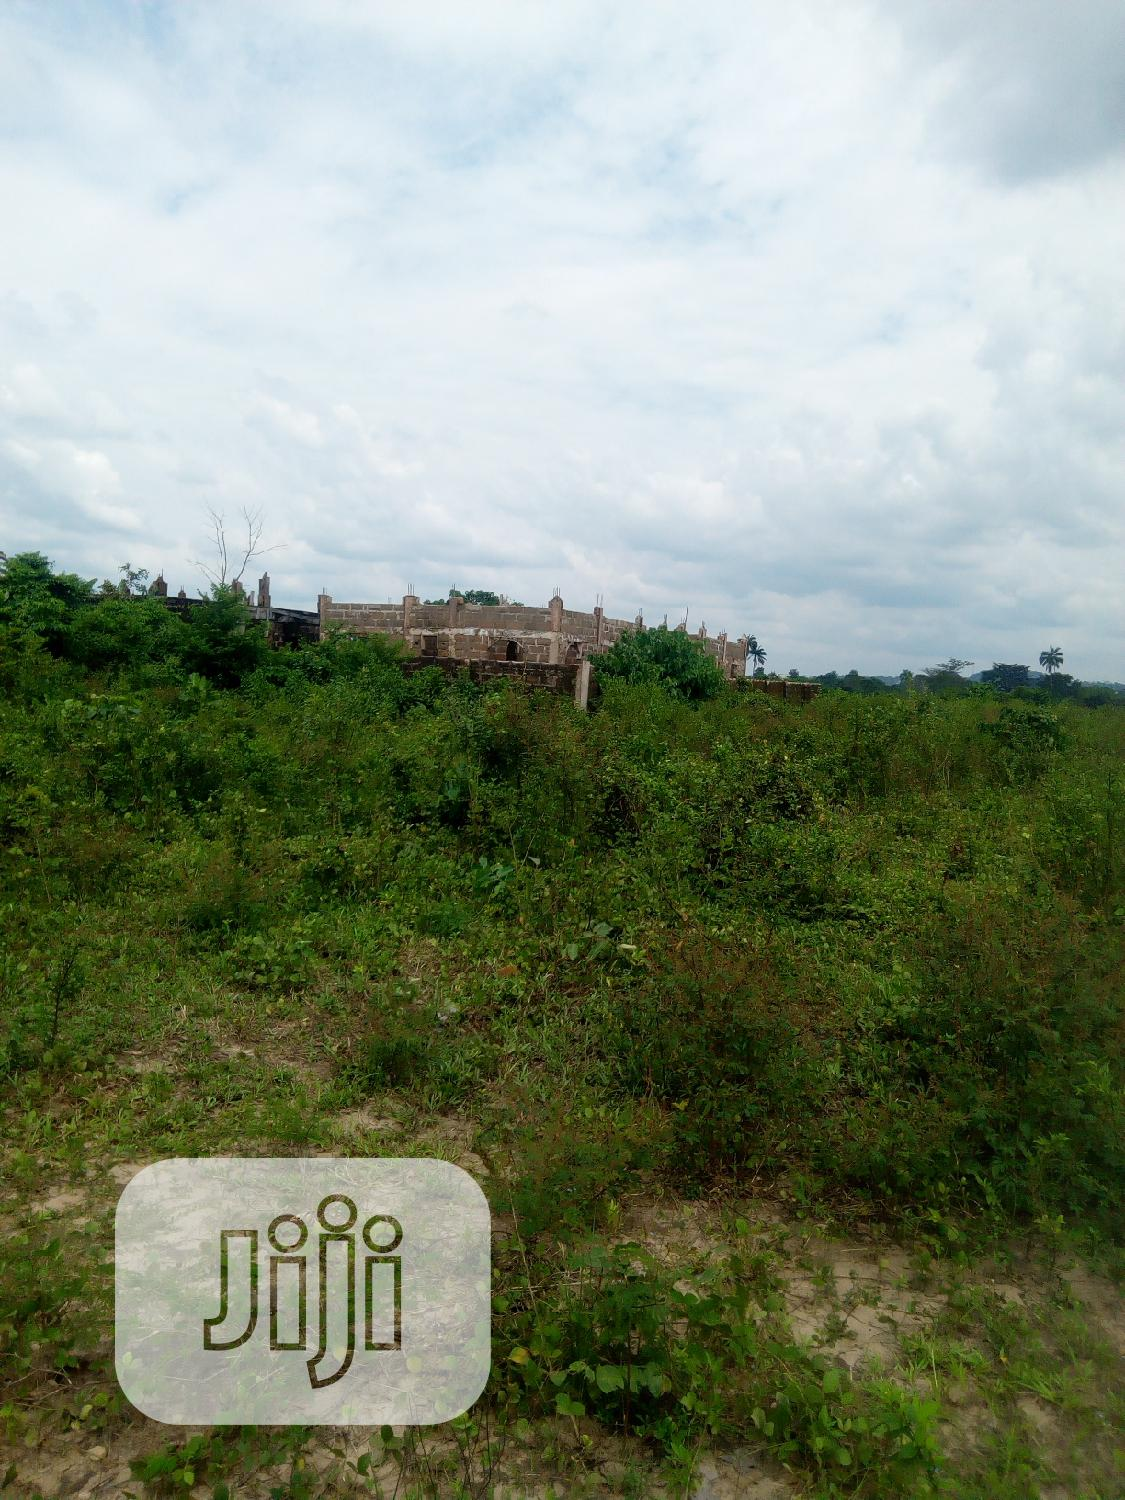 One Plot of Land for Sale at the Back of Star Gate Hotel